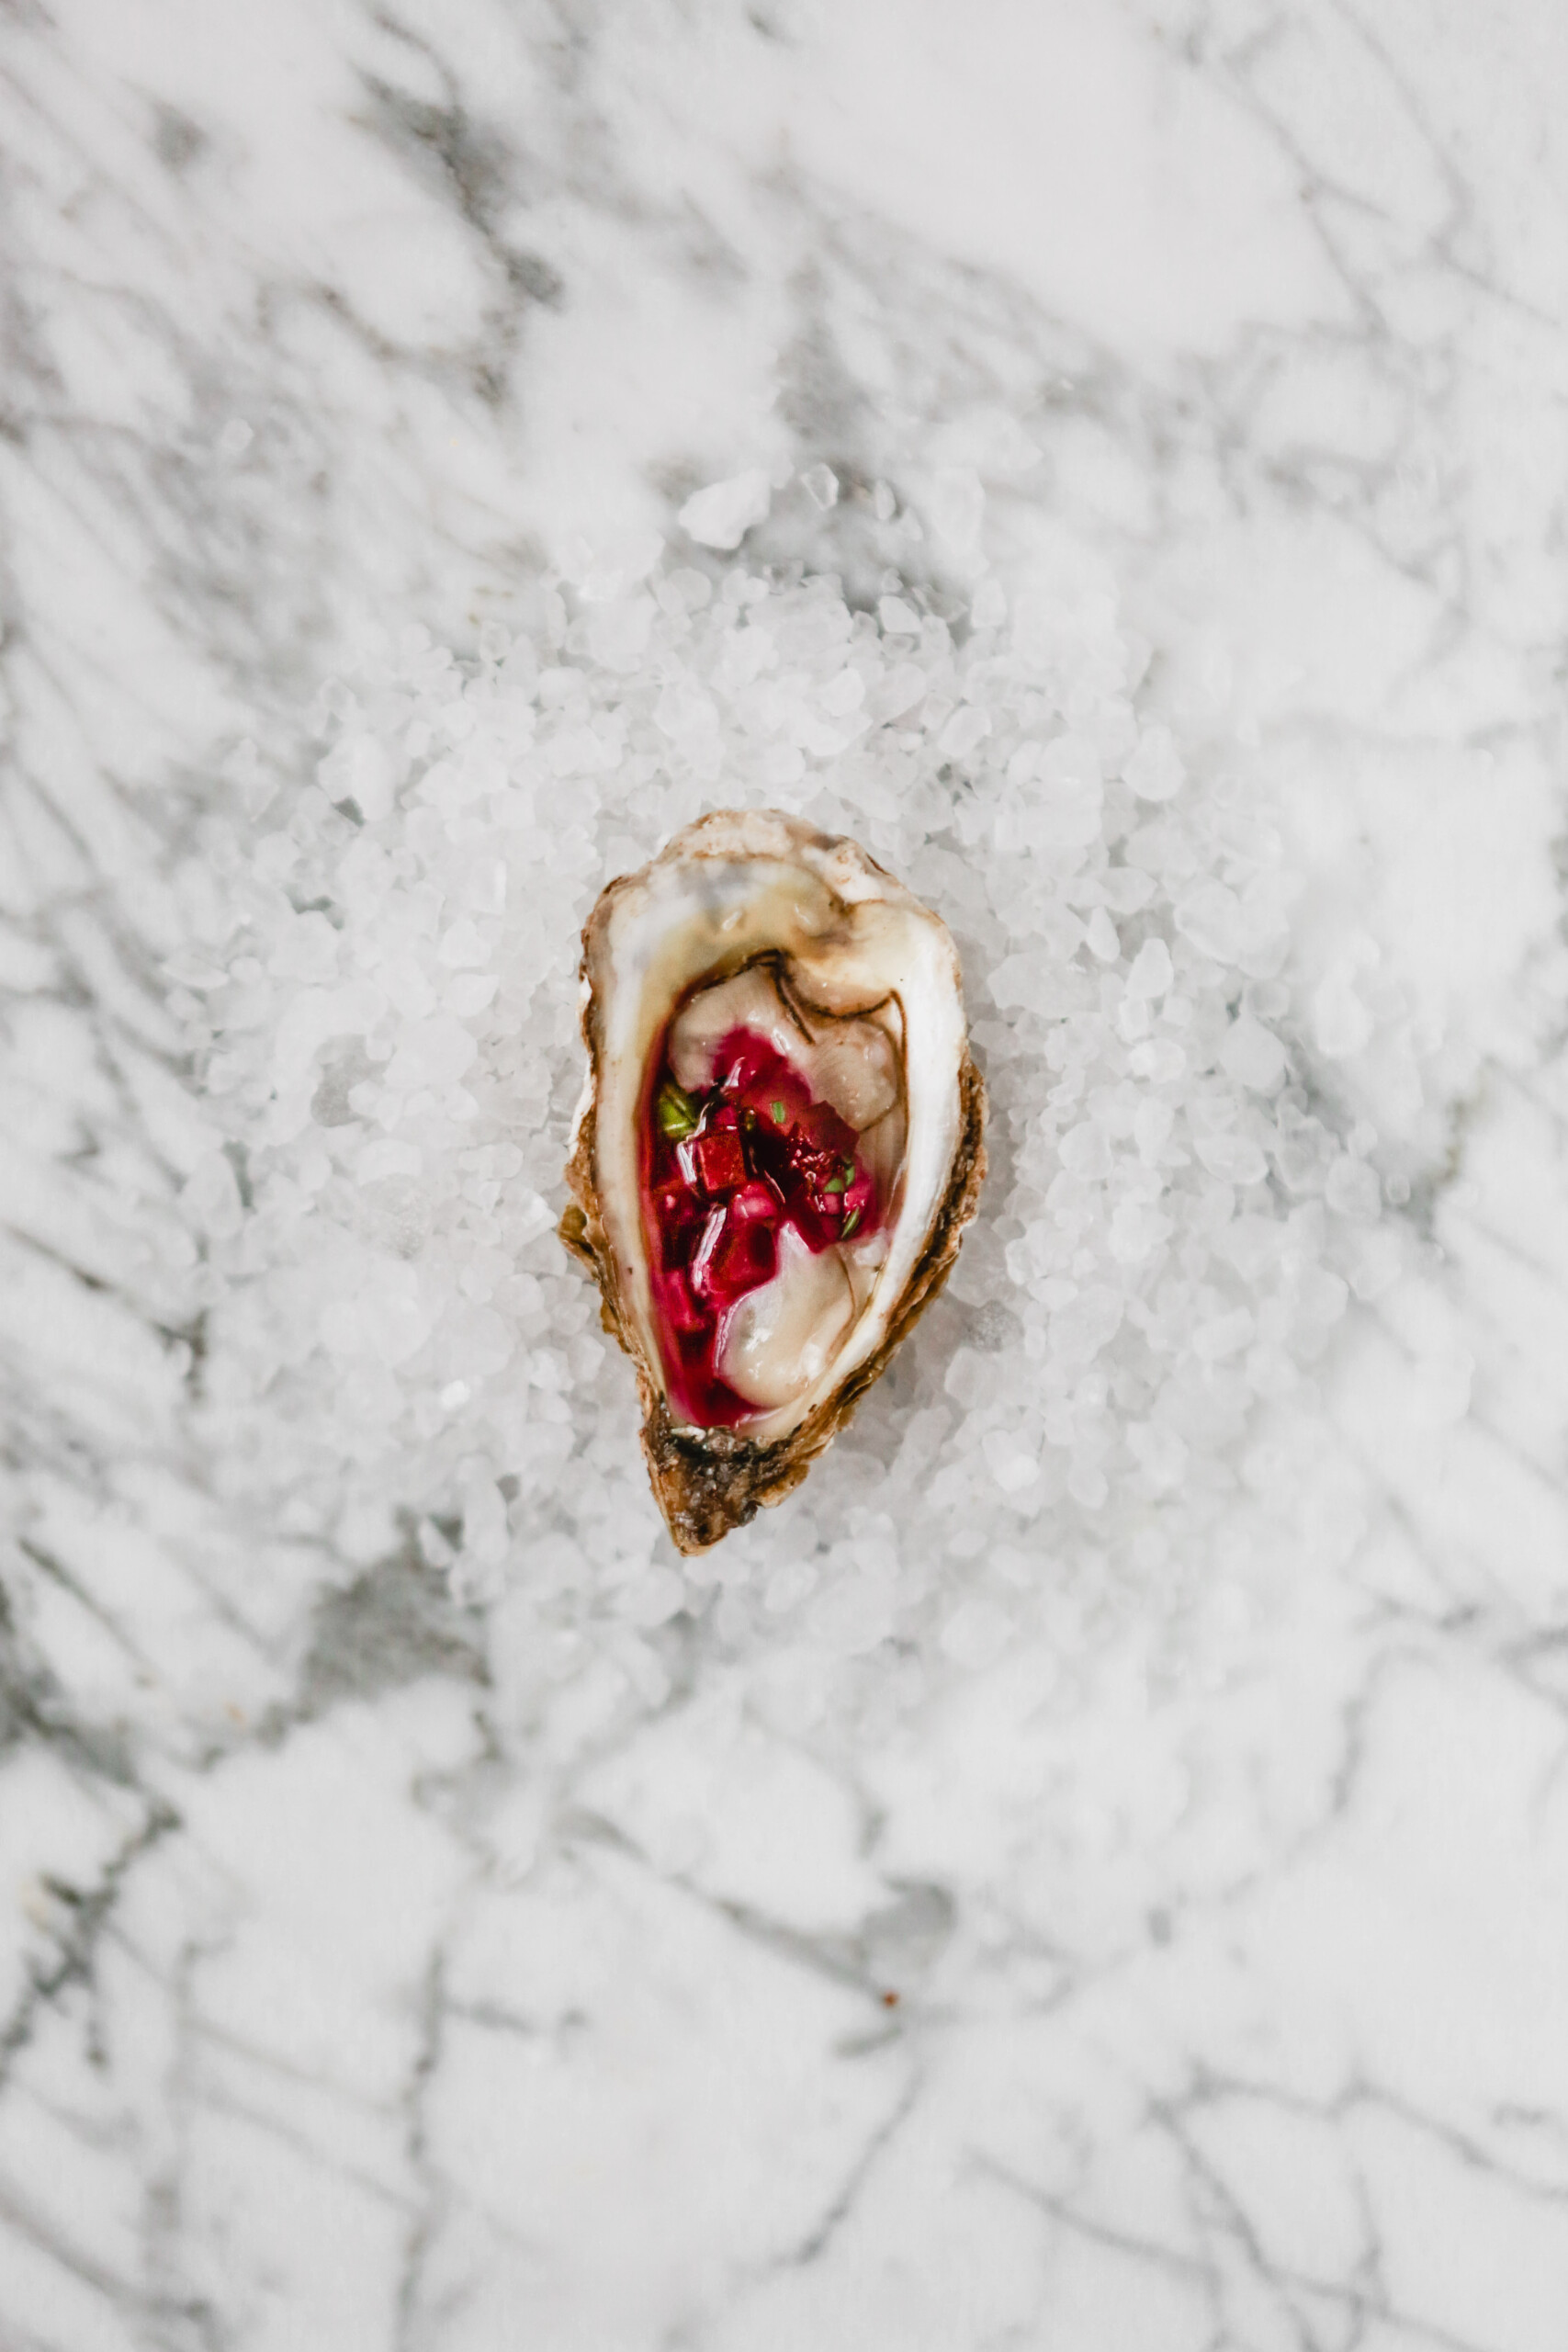 Photograph of one oyster on the half shell set on a bed of rock salt topped with a red mignonette